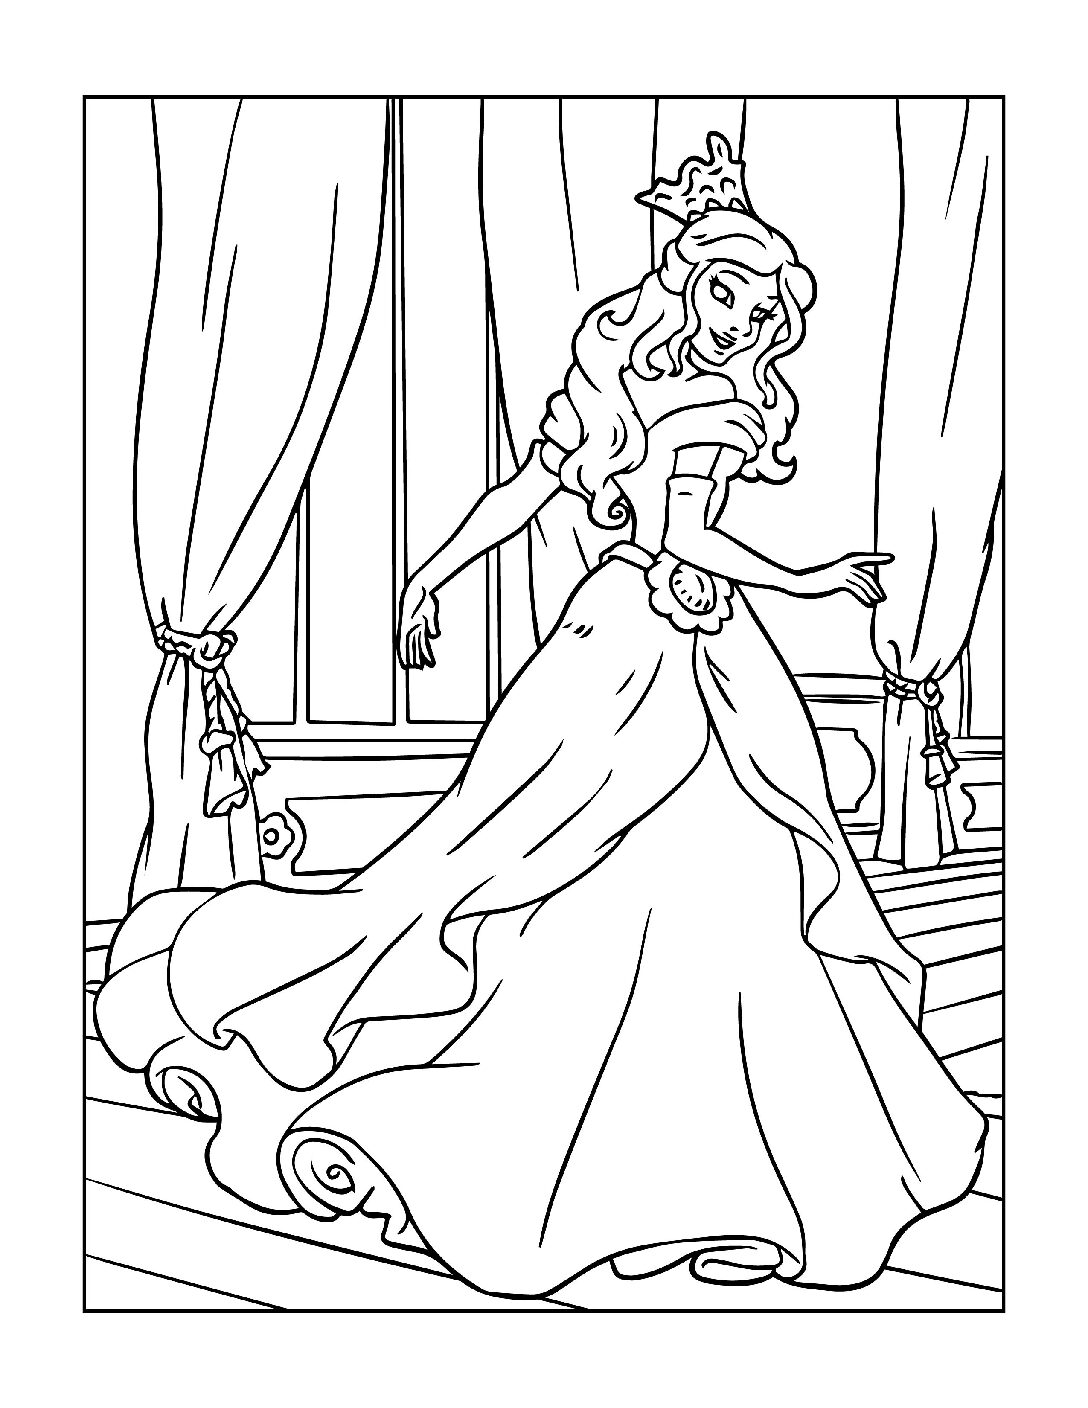 Coloring-Pages-Princess-12-01-pdf Free Printable Princesses Colouring Pages